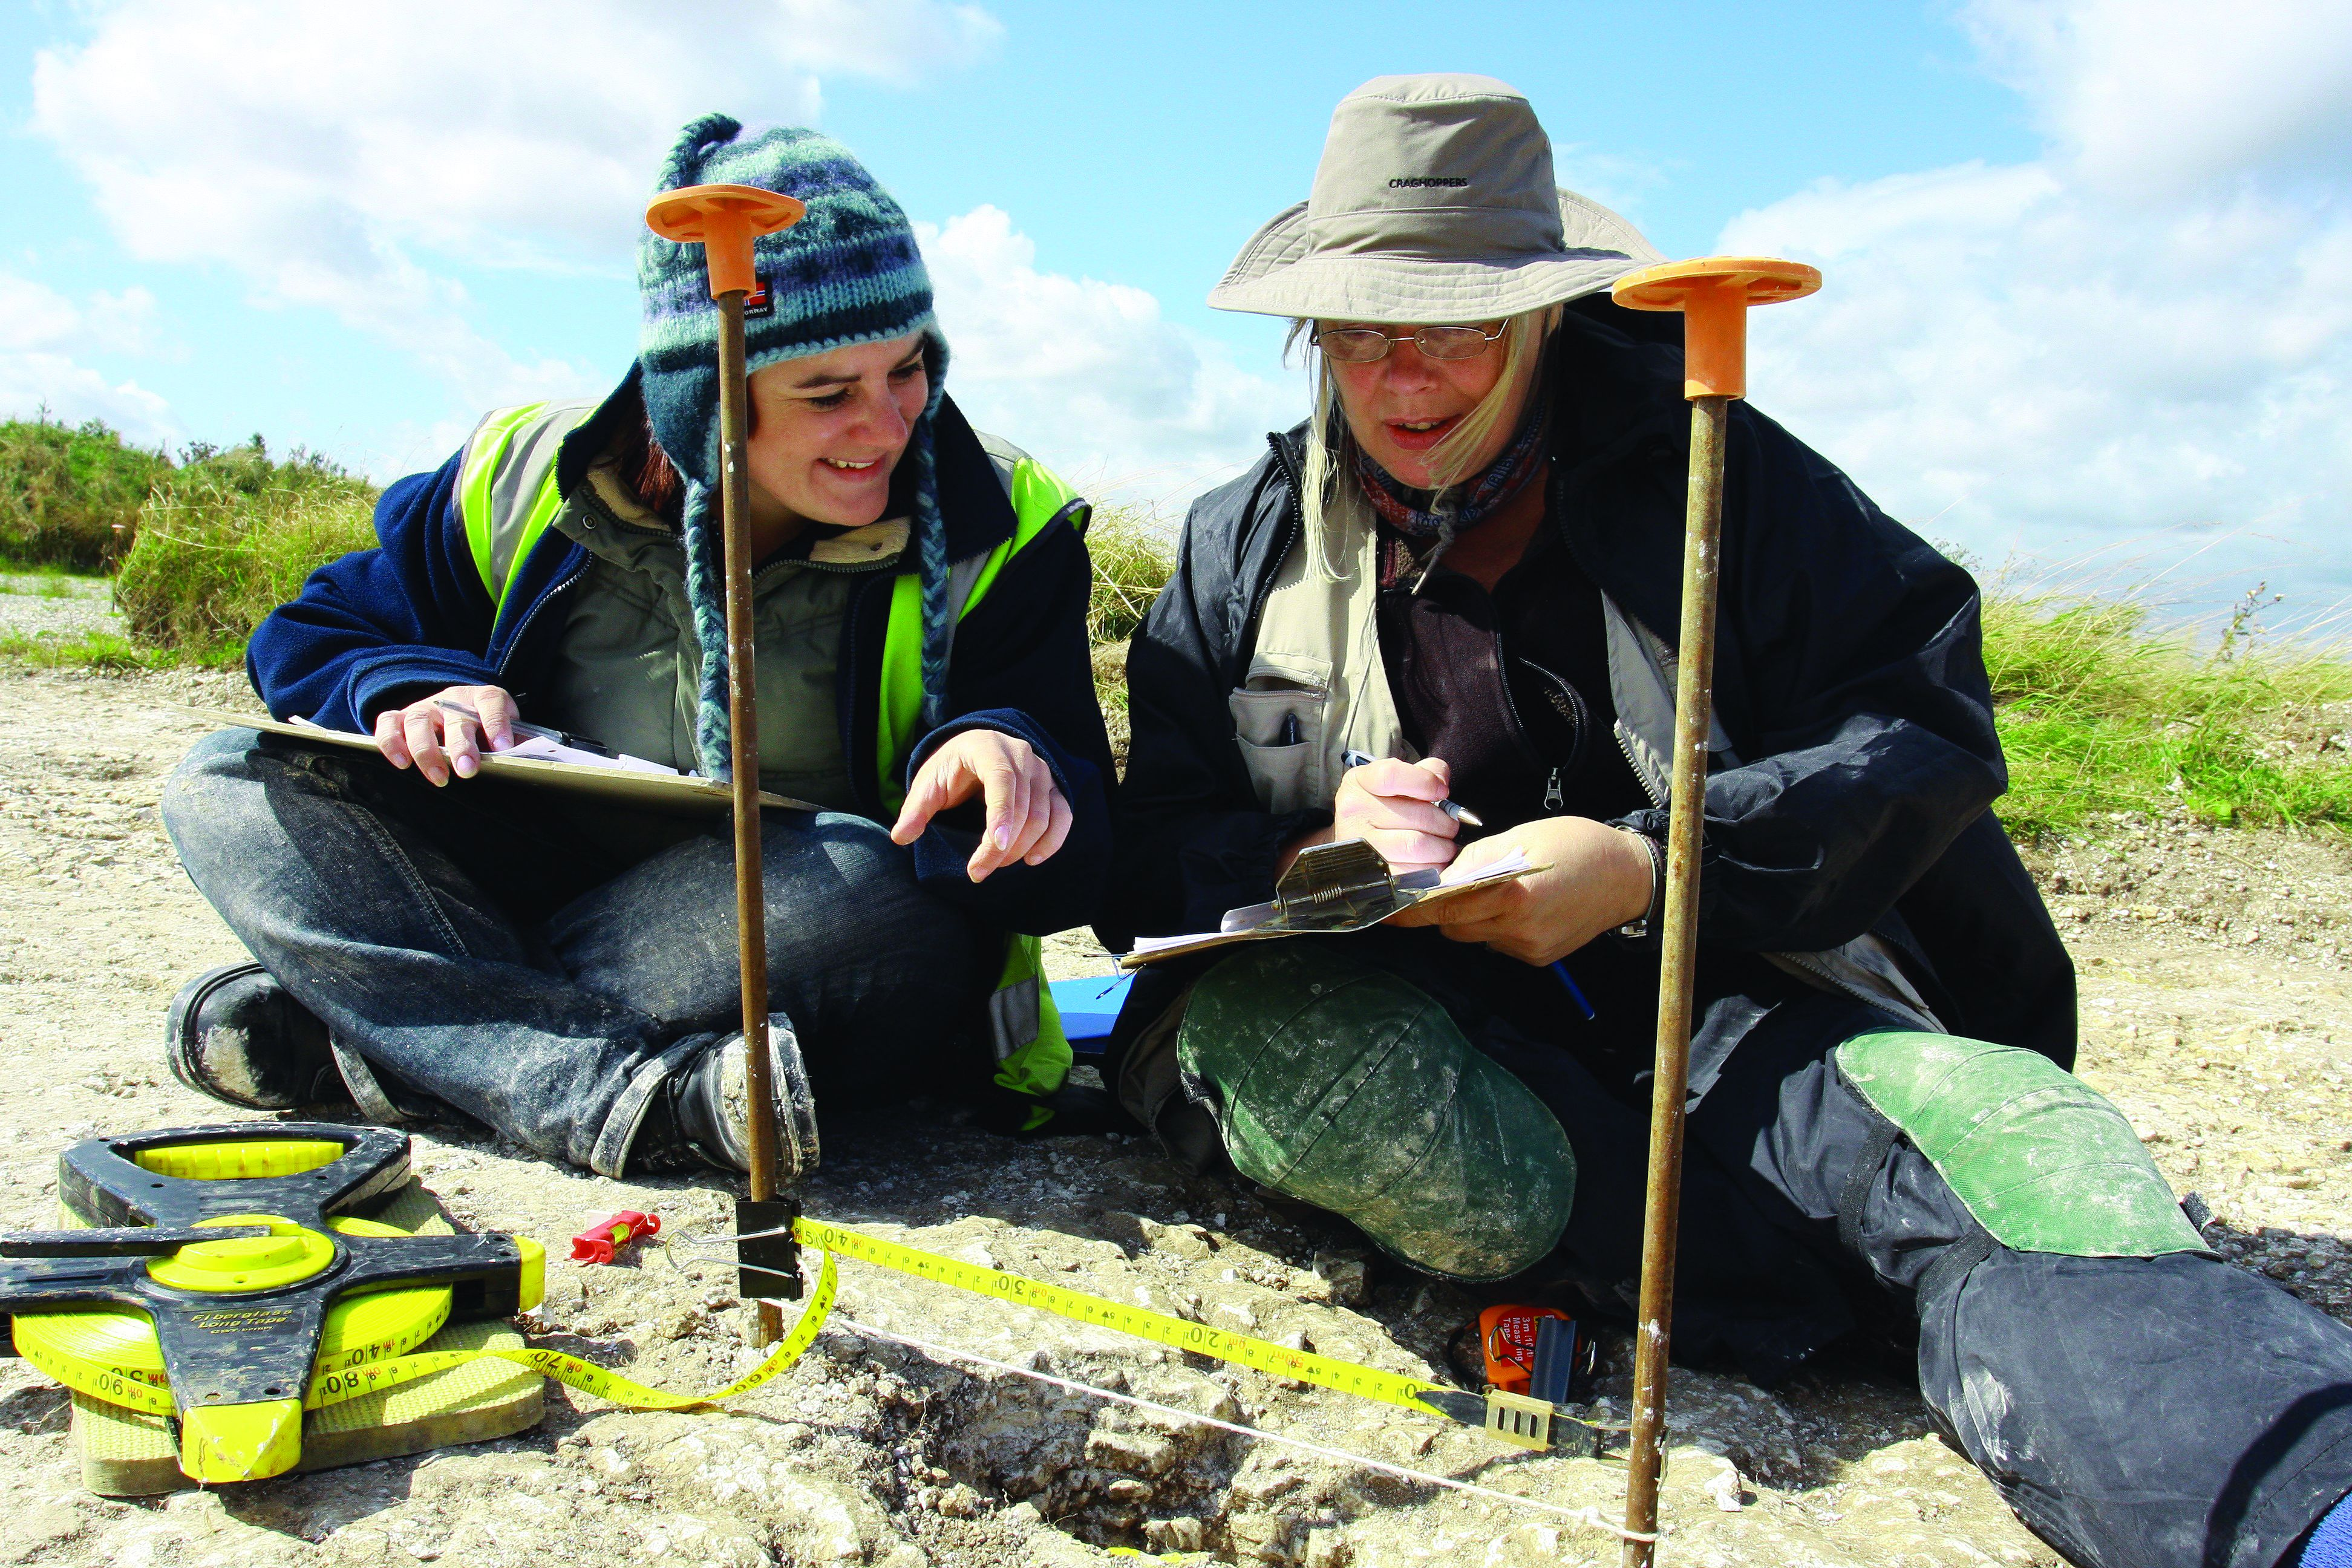 Want to be a Digger? - Entering the world of commerical archaeology